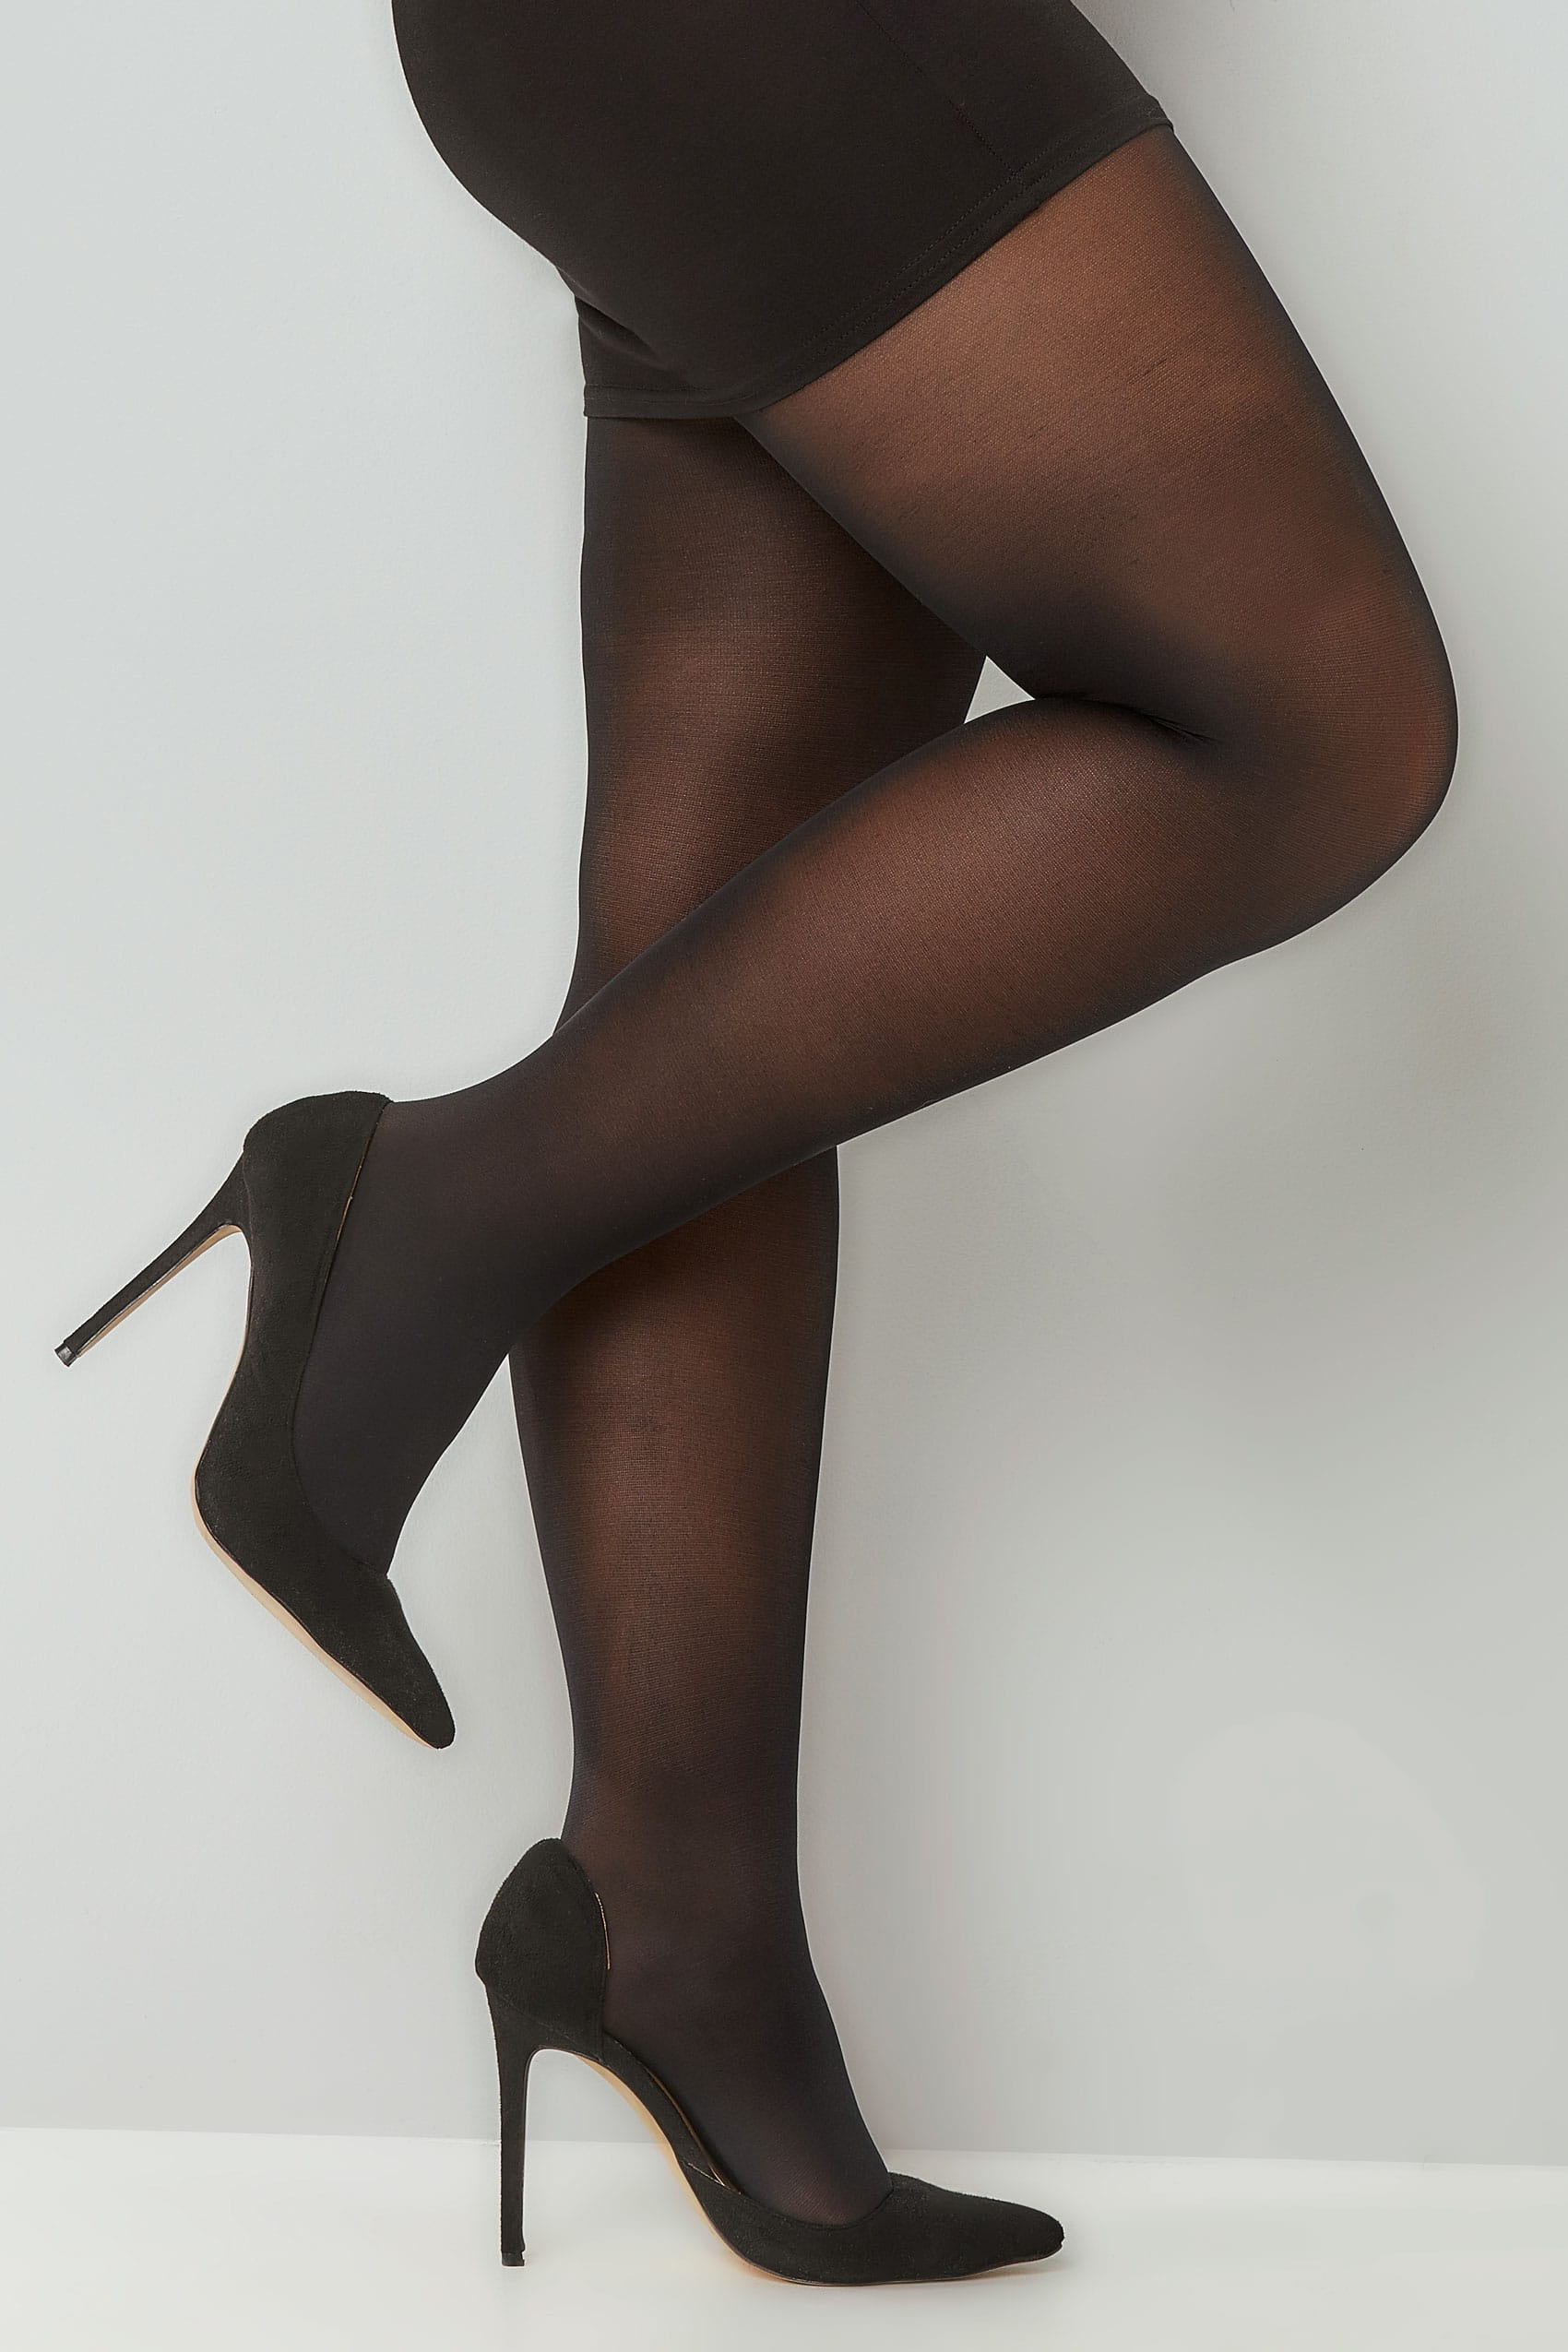 Find great deals on eBay for opaque tights black. Shop with confidence.